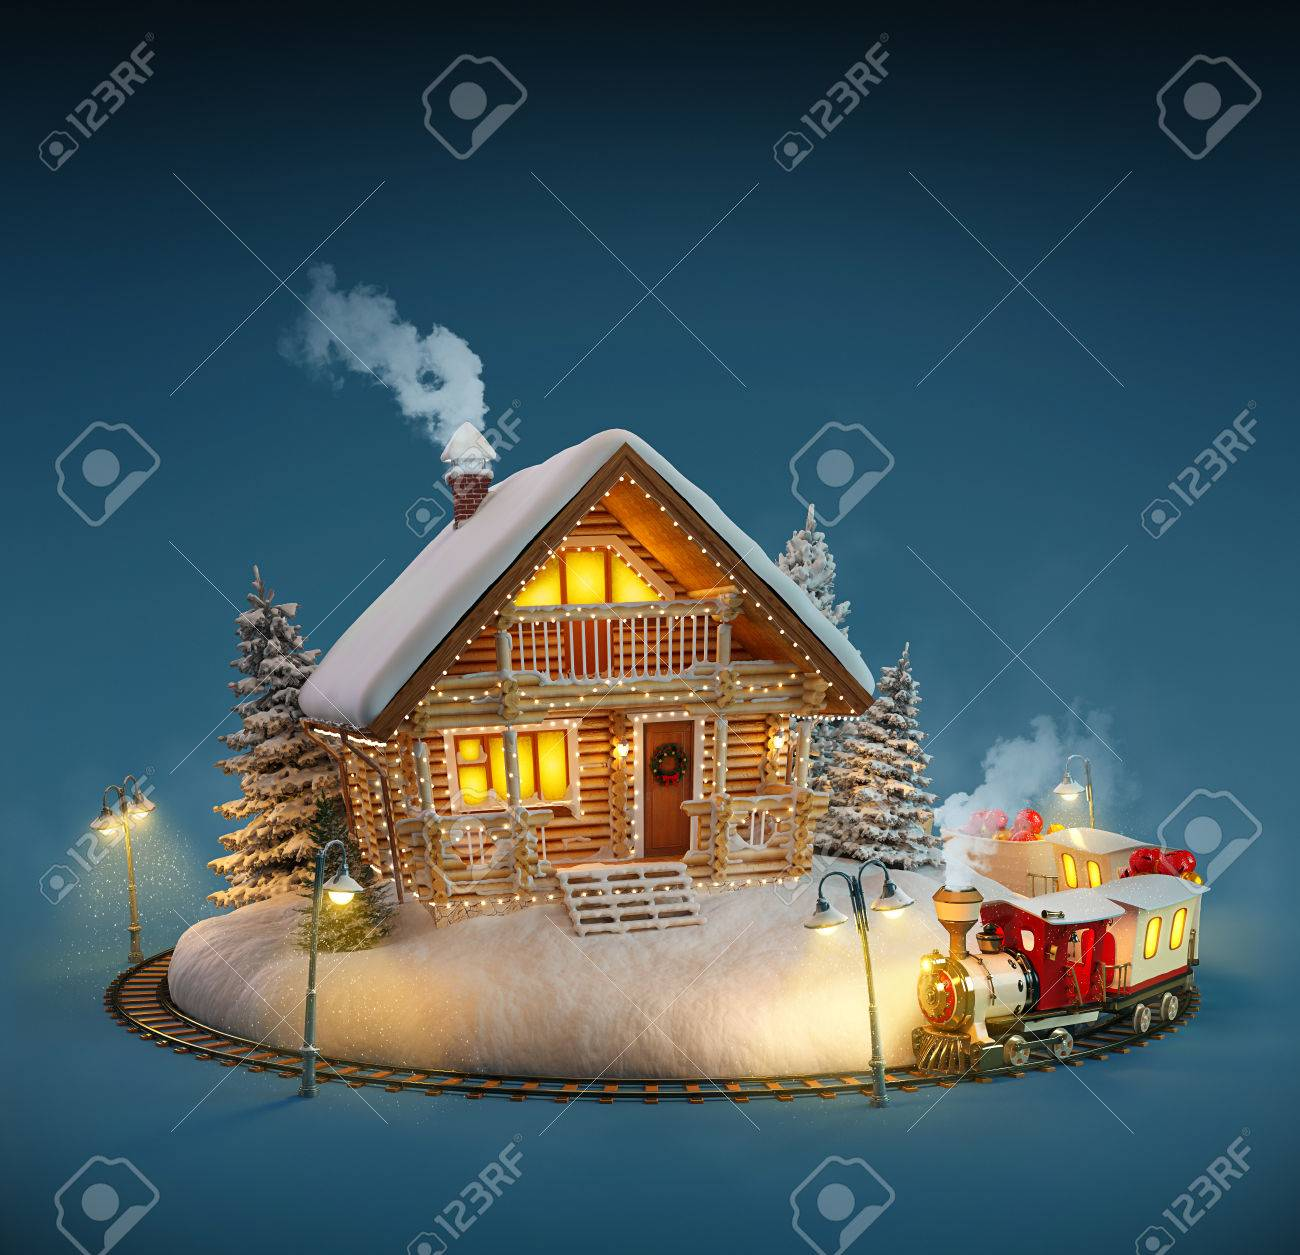 decorated log house with christmas lights and magical train on blue background unusual christmas illustration